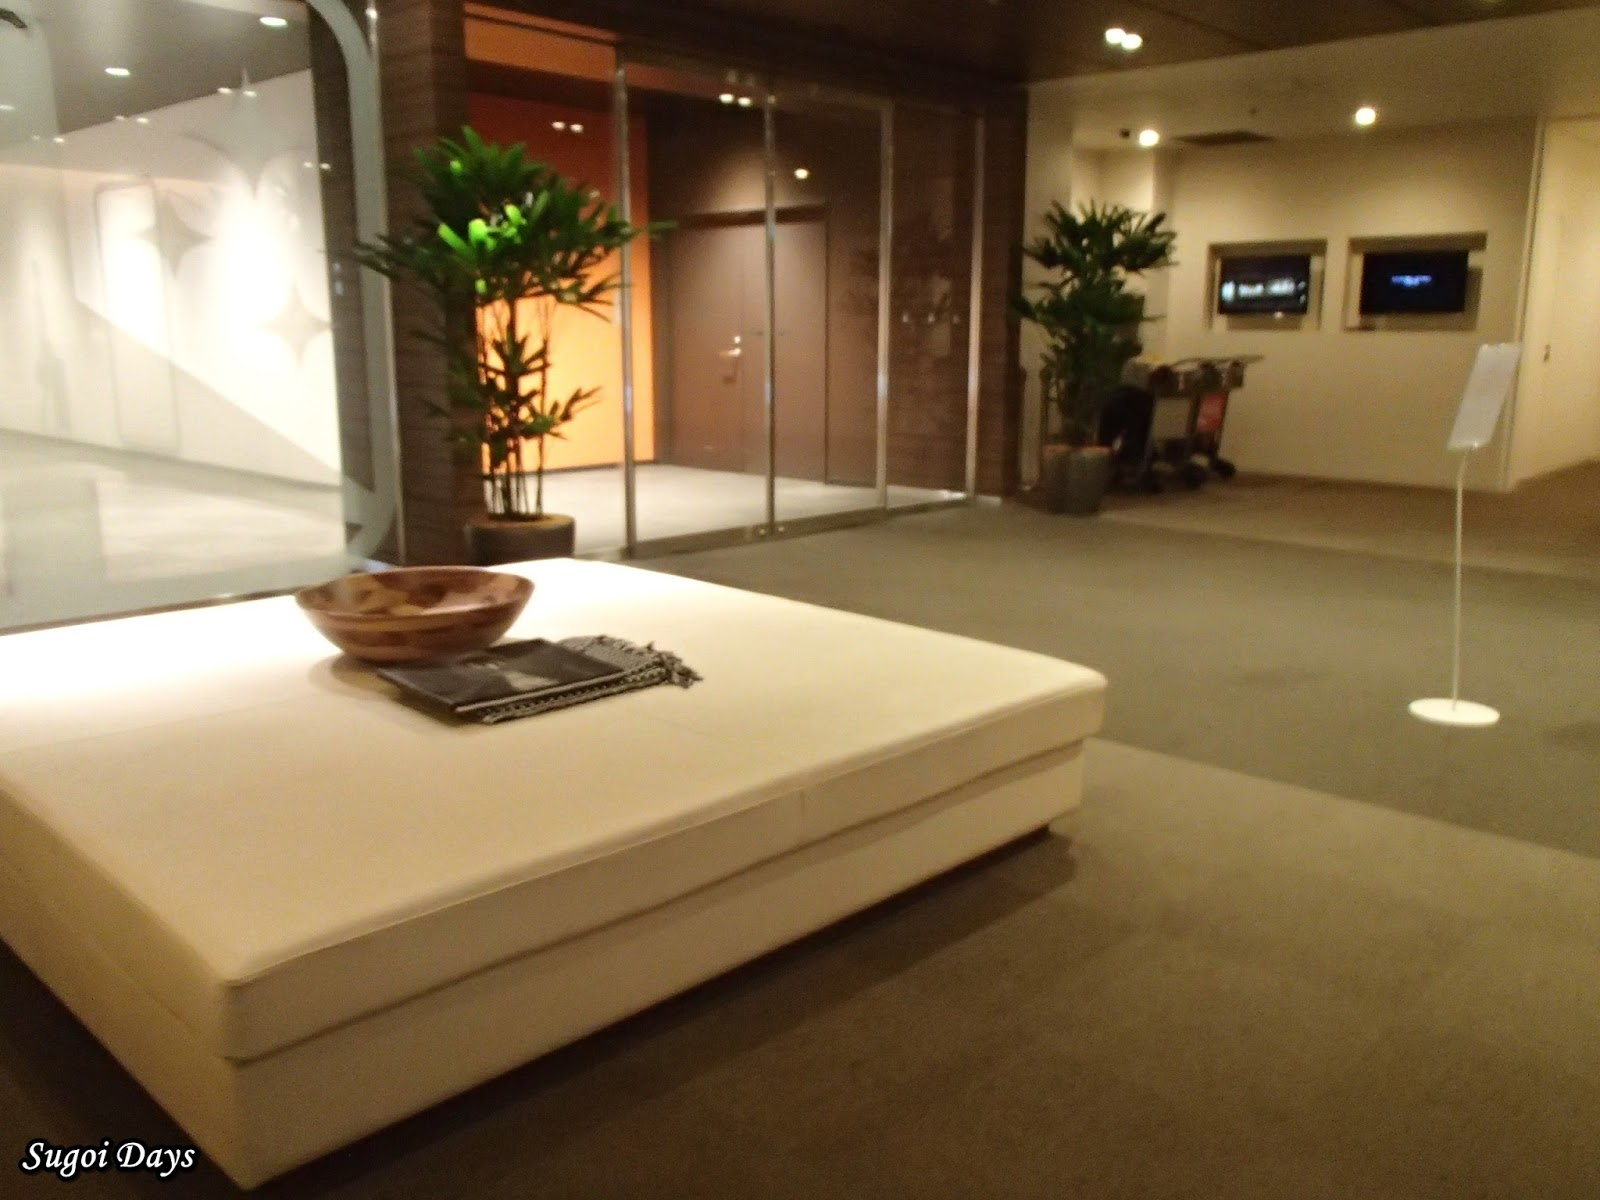 Sugoi days first cabin capsule hotel haneda airport for First cabin haneda